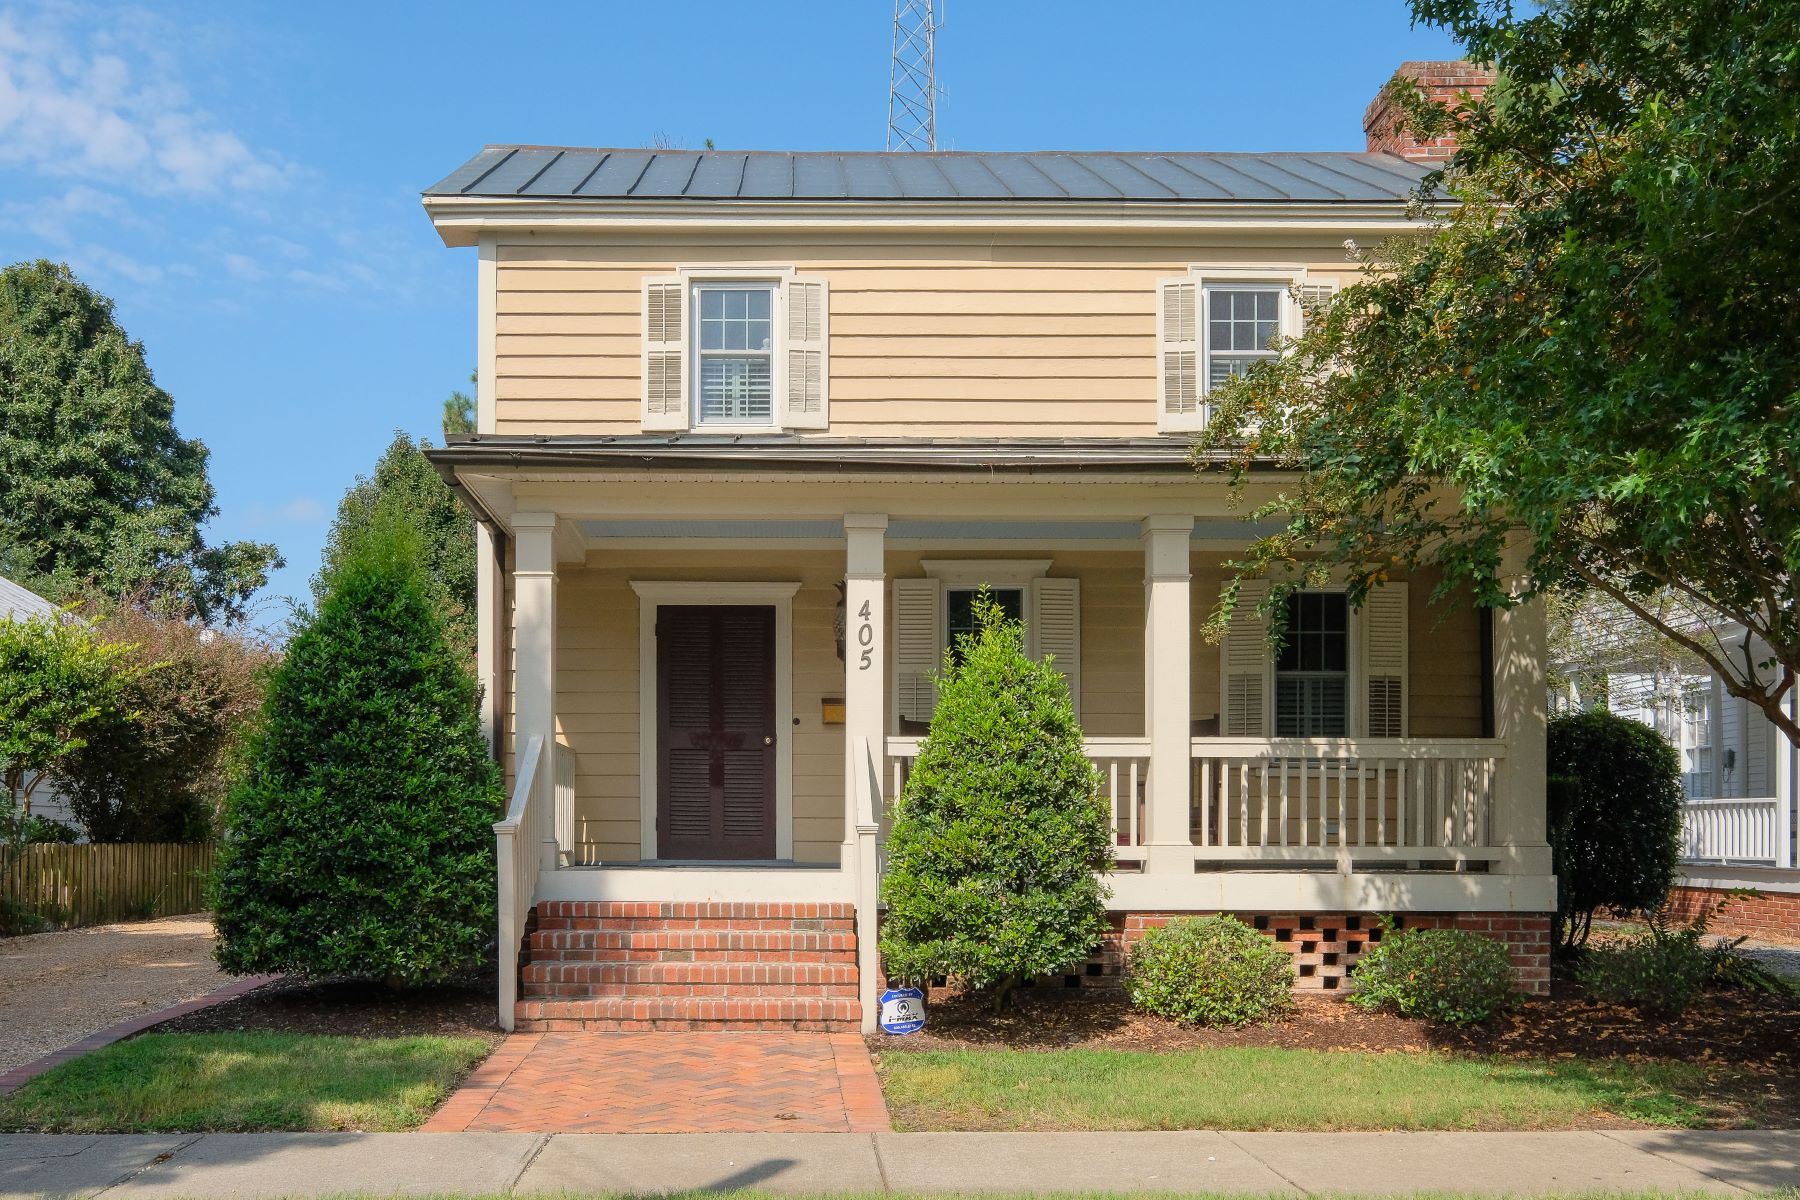 واحد منزل الأسرة للـ Sale في Renovated Sansbury Home 405 N Broad St, Edenton, North Carolina, 27932 United States